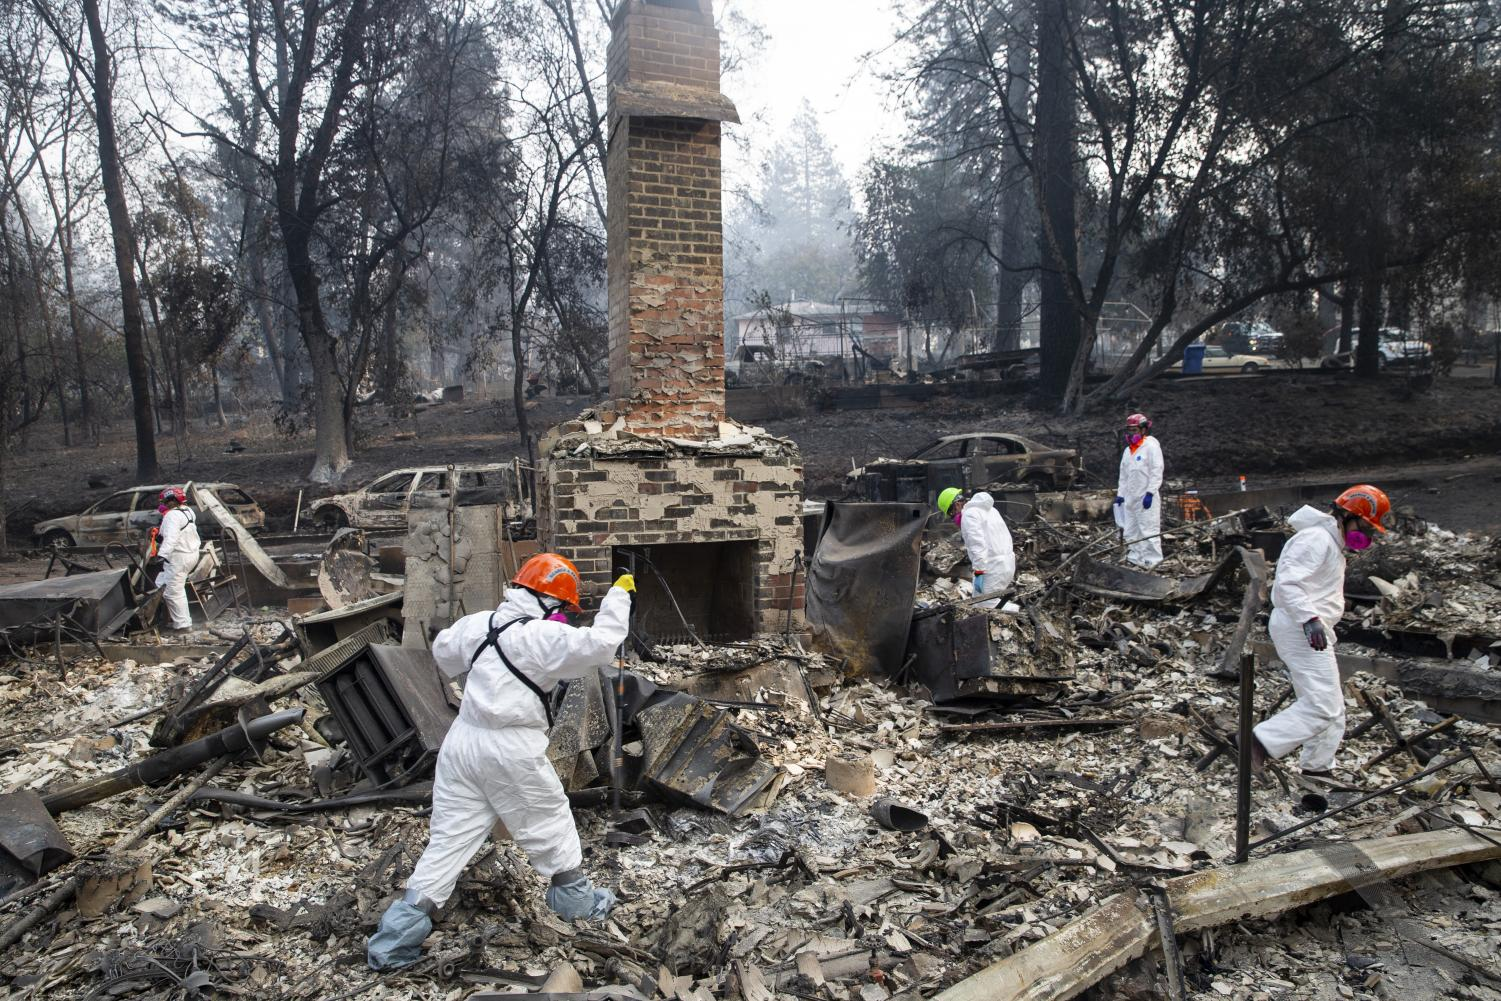 Search and rescue teams inspect the grounds of a house burned down by the Camp Fire along Boquest Boulevard on Nov. 17 in Paradise, California. University students from the area stay updated from afar as their family and friends recover.